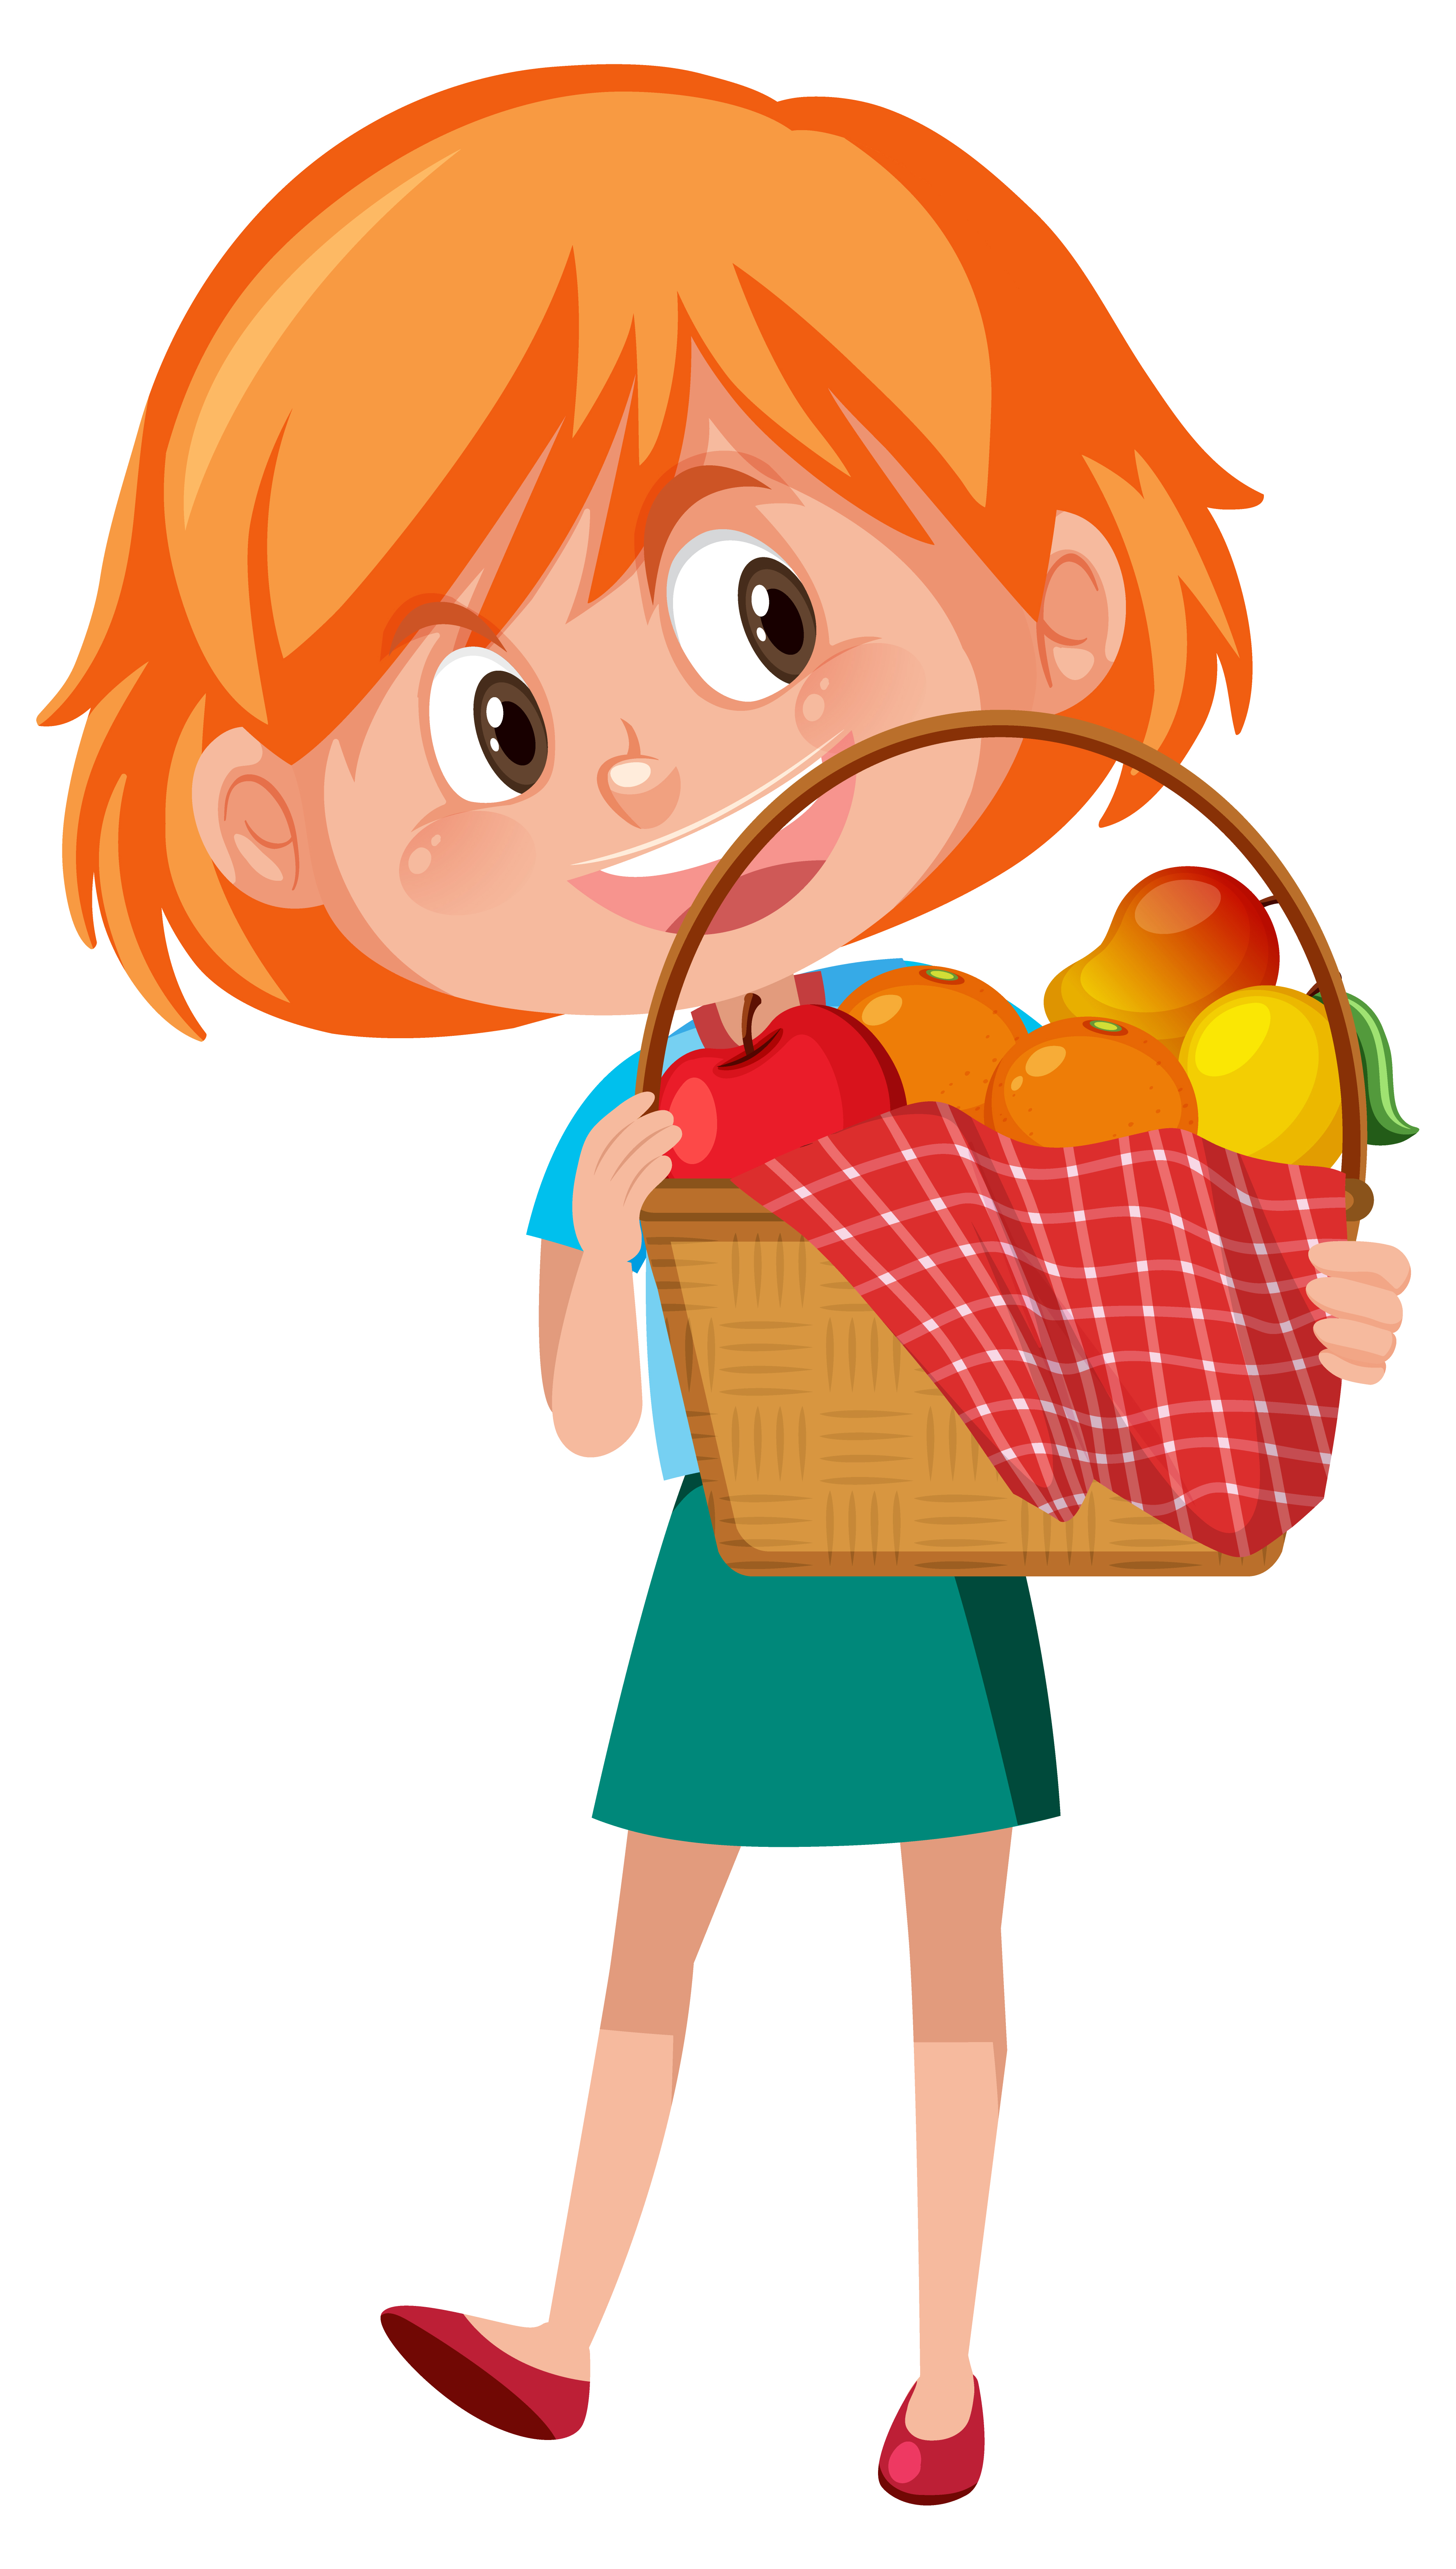 Girl Holding Picnic Basket Cartoon Character Isolated On White Background Download Free Vectors Clipart Graphics Vector Art